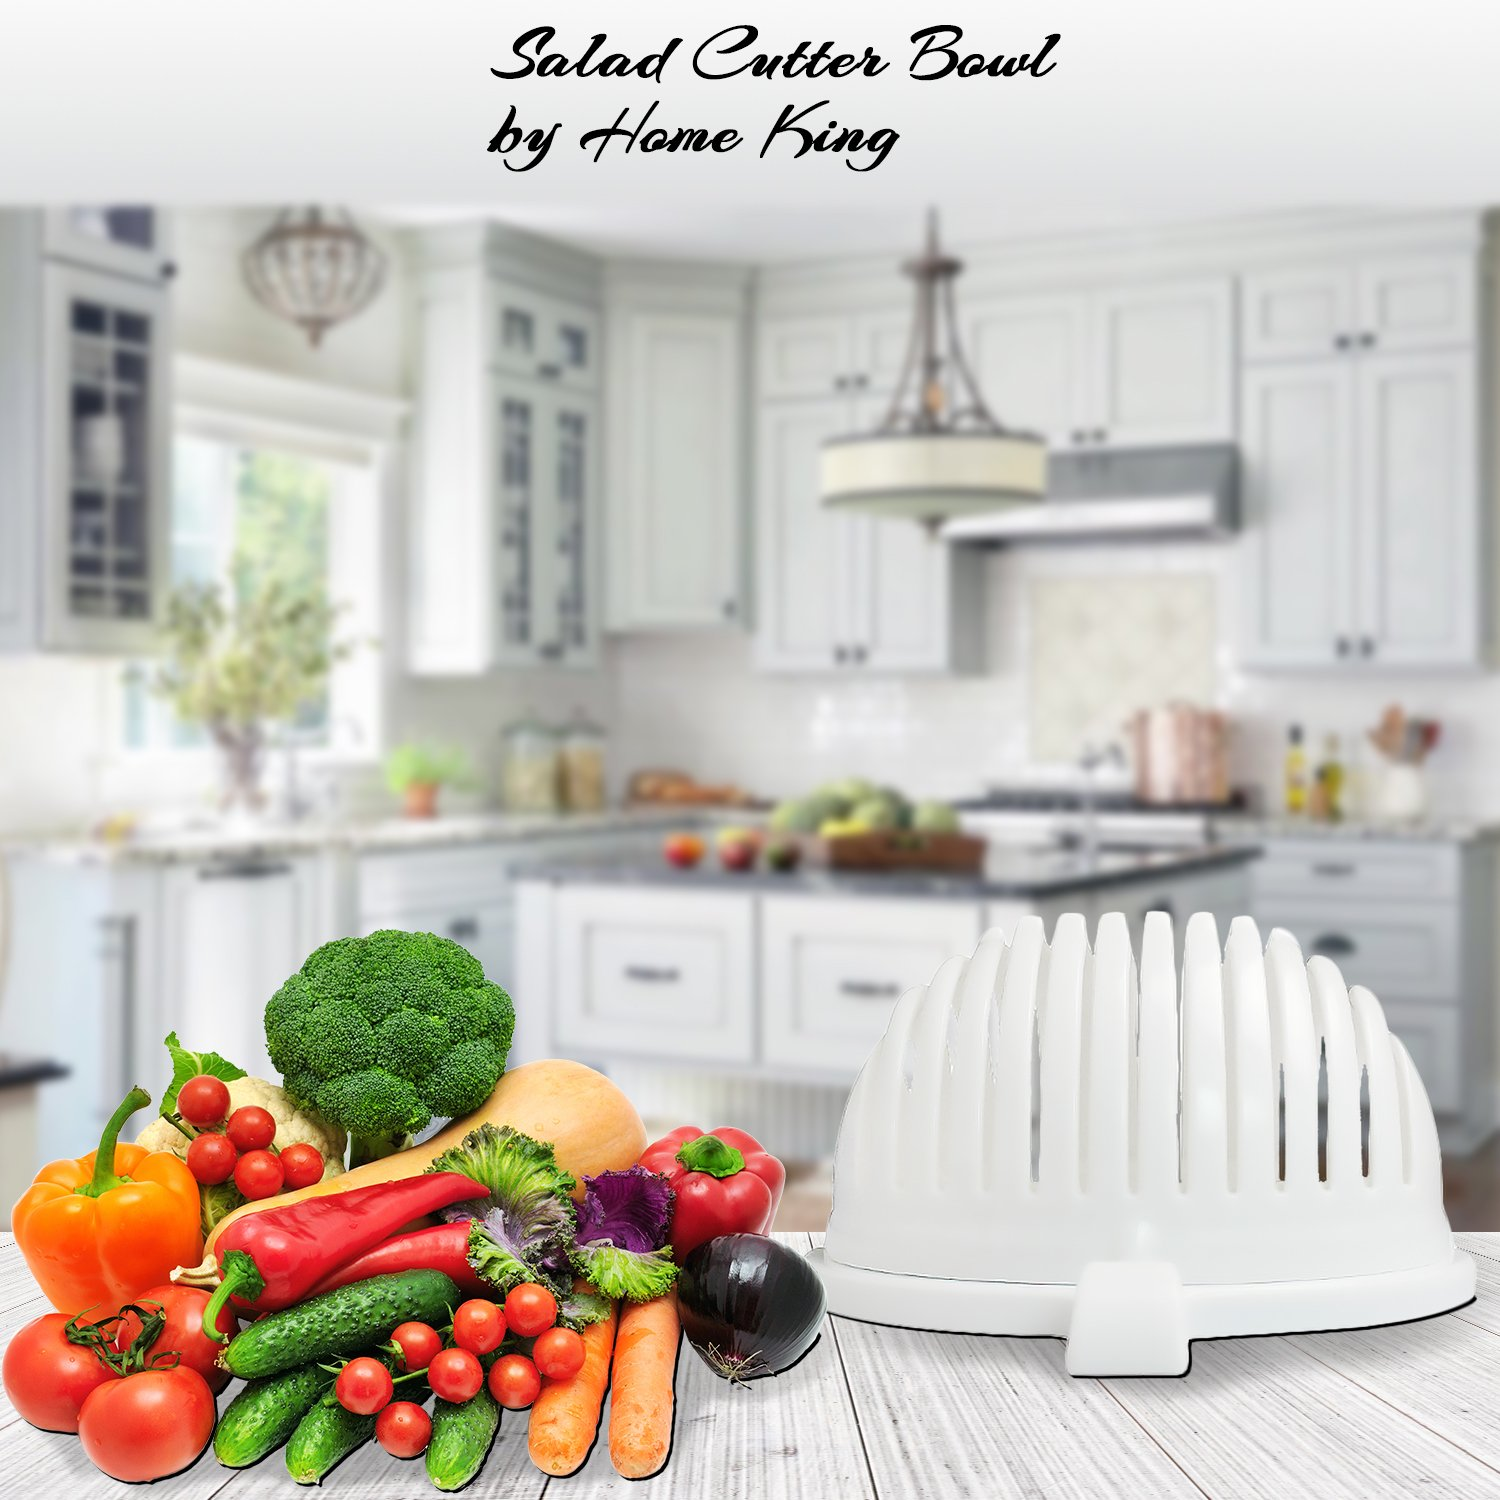 Amazon.com | Salad Mixing Bowl by Home King | 60 Seconds Vegetable ...